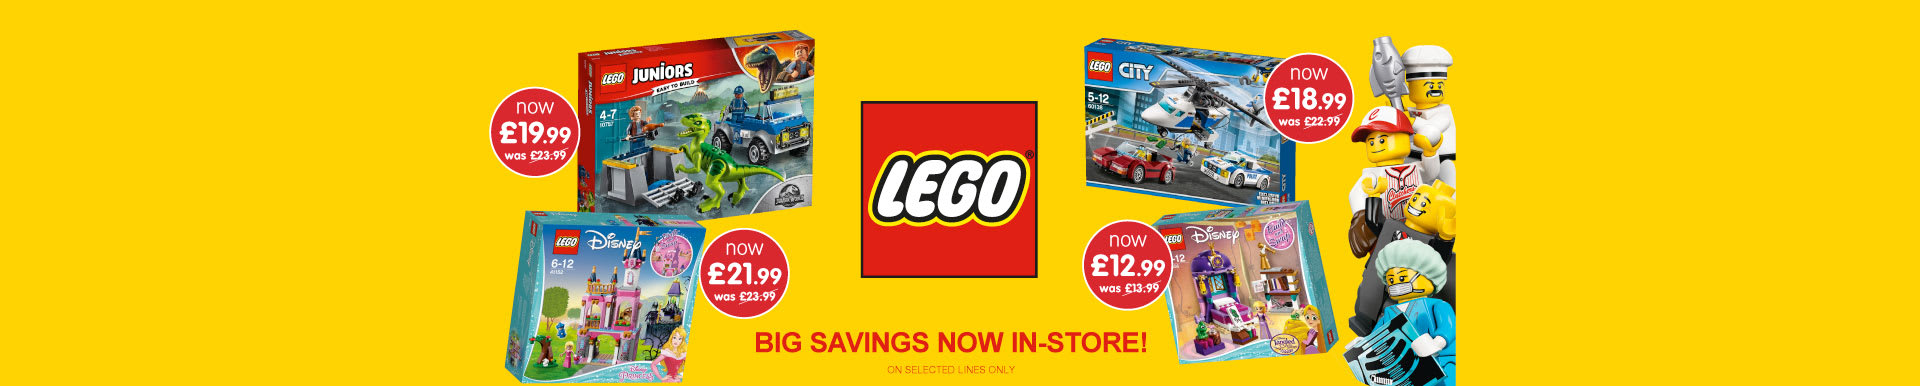 Save on LEGO at B&M.